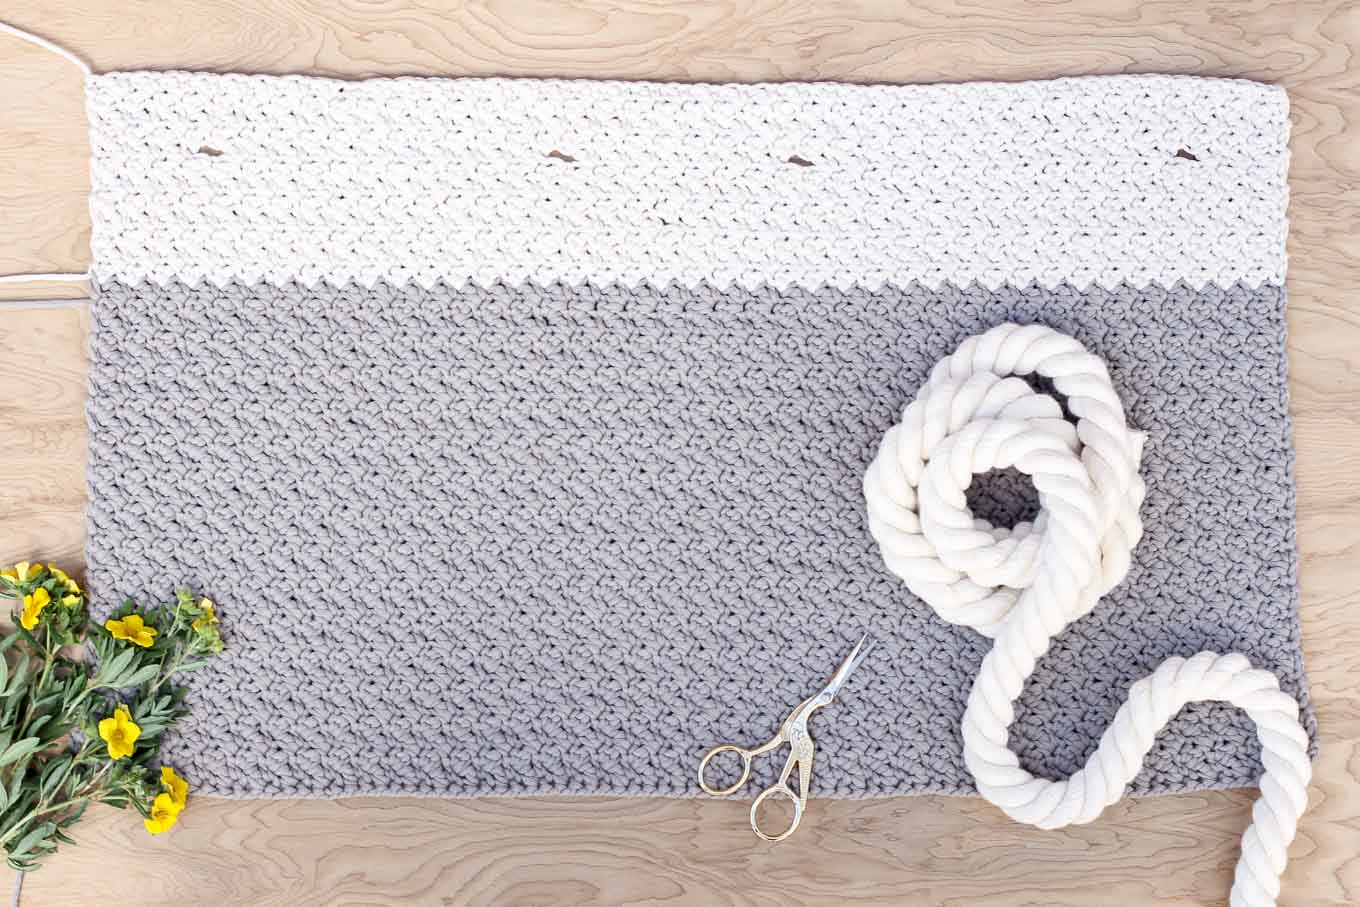 Beginner Crochet Tote Bag Pattern : This free crochet bag pattern for beginners is deceptively simple ...